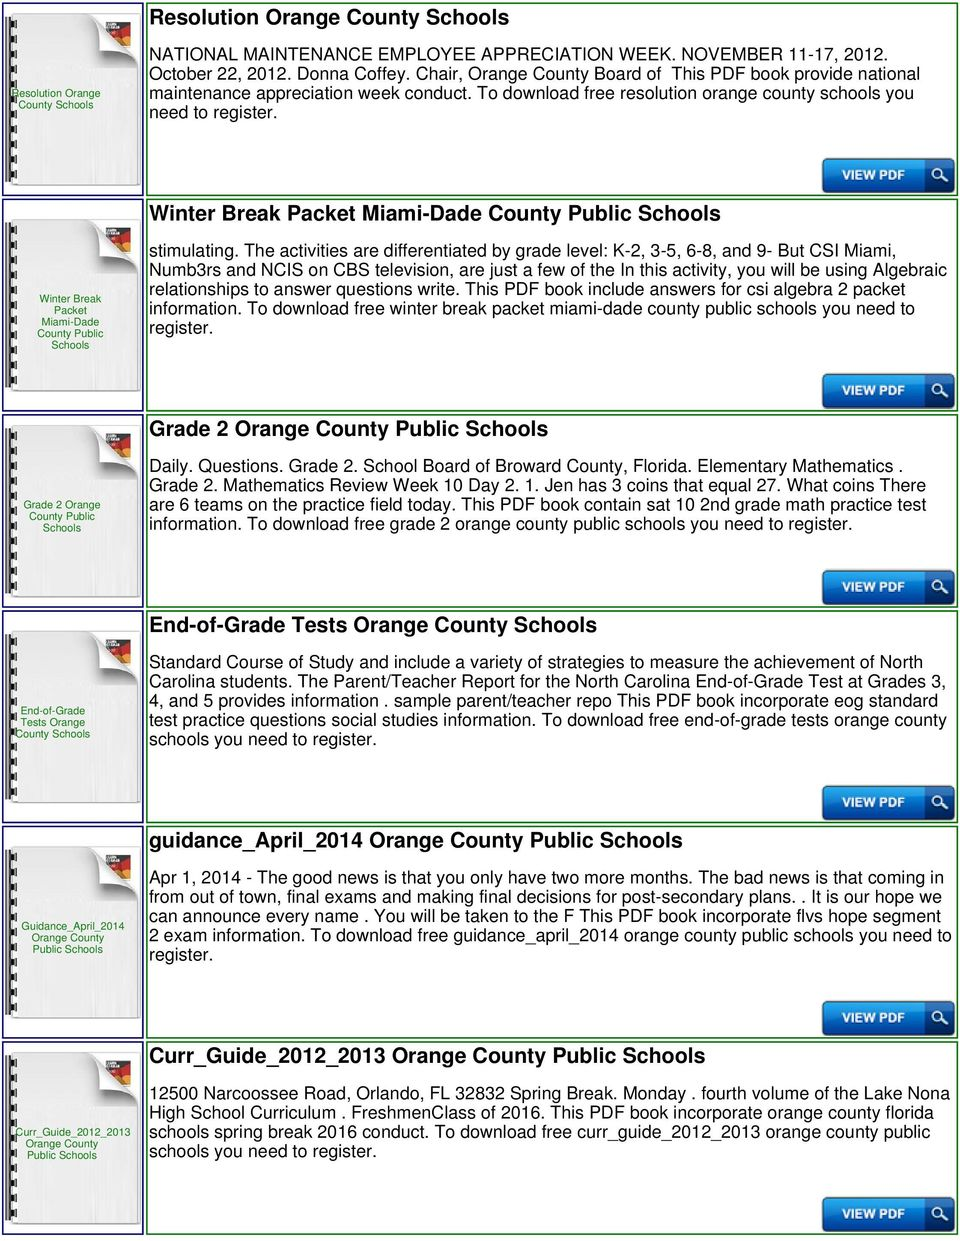 To download free resolution orange county schools you need to Winter Break Packet Miami-Dade County Winter Break Packet Miami-Dade stimulating.